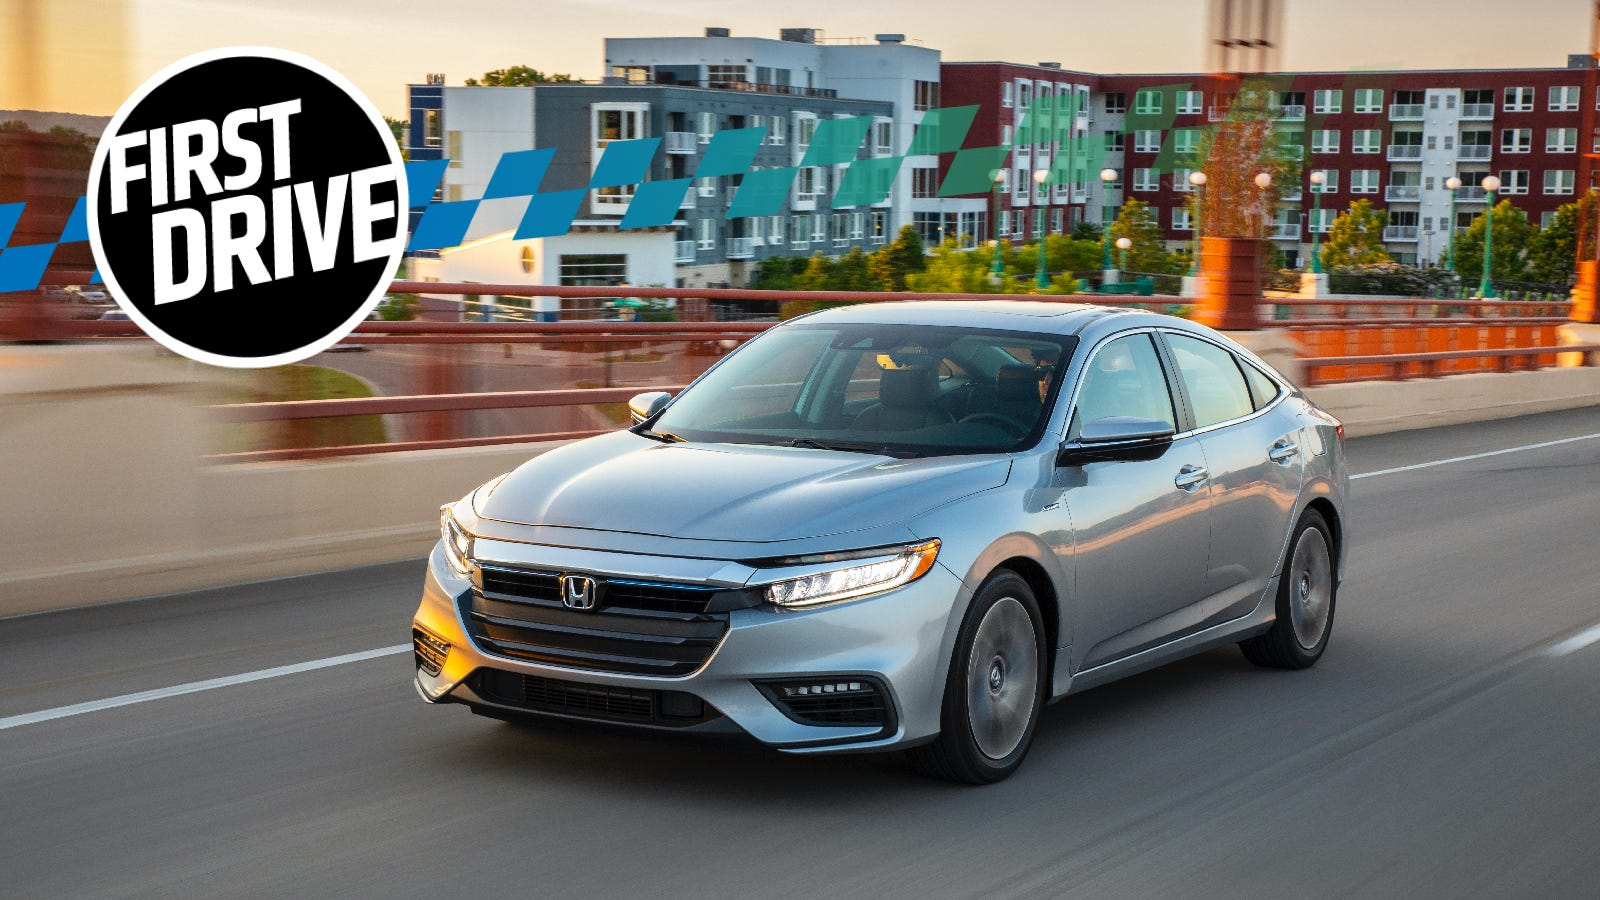 2019 Honda Insight - Off-Ramp - Leasehackr Forum